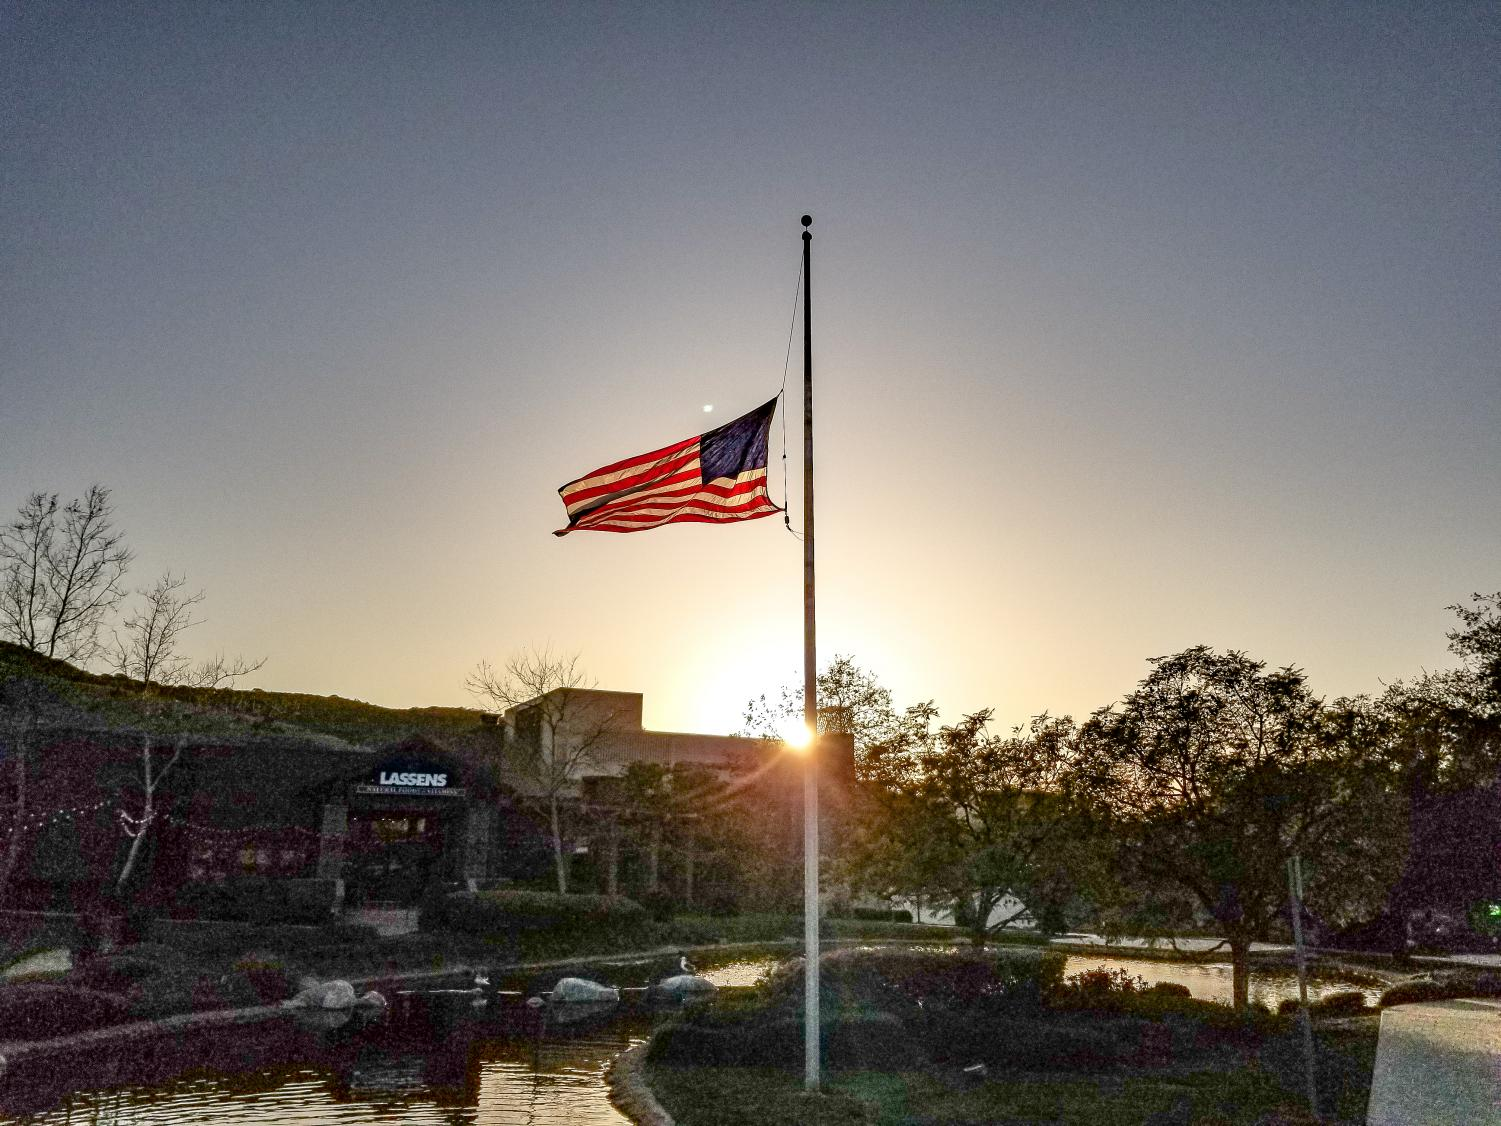 As the sun set on Saturday, March 20, 2021, the American flag flew at half-staff at The Lakes at Thousand Oaks in honor of the Atlanta, GA shooting victims. Next door, at the Thousand Oaks Civic Plaza (seen in the background), a candlelight vigil was organized to honor the eight whose lives were taken as well as to spread the message to racism and discrimination of the Asian community.